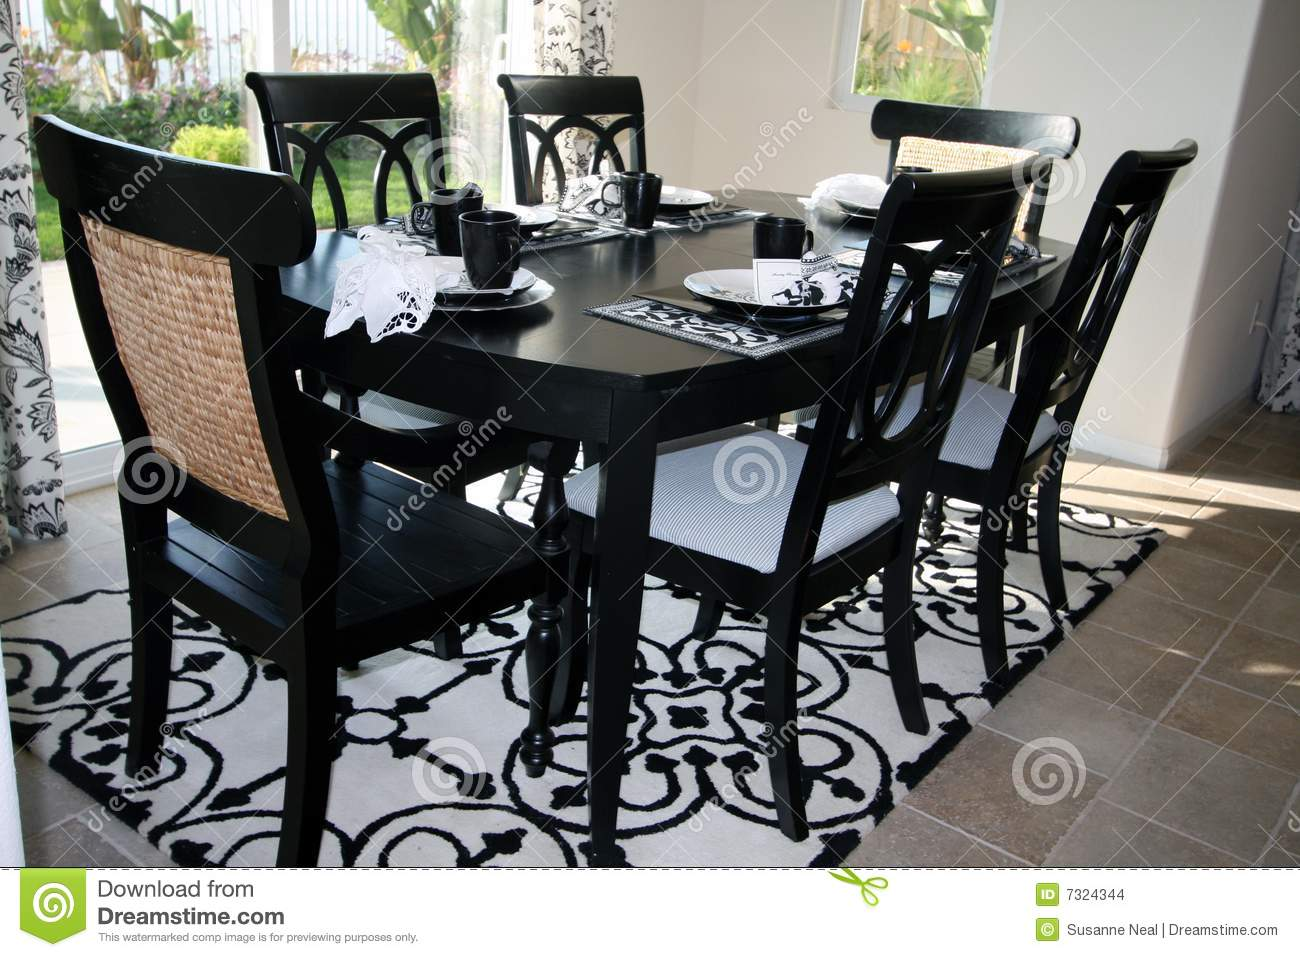 Dining set in black and white stock images image 7324344 for Black dining room table set